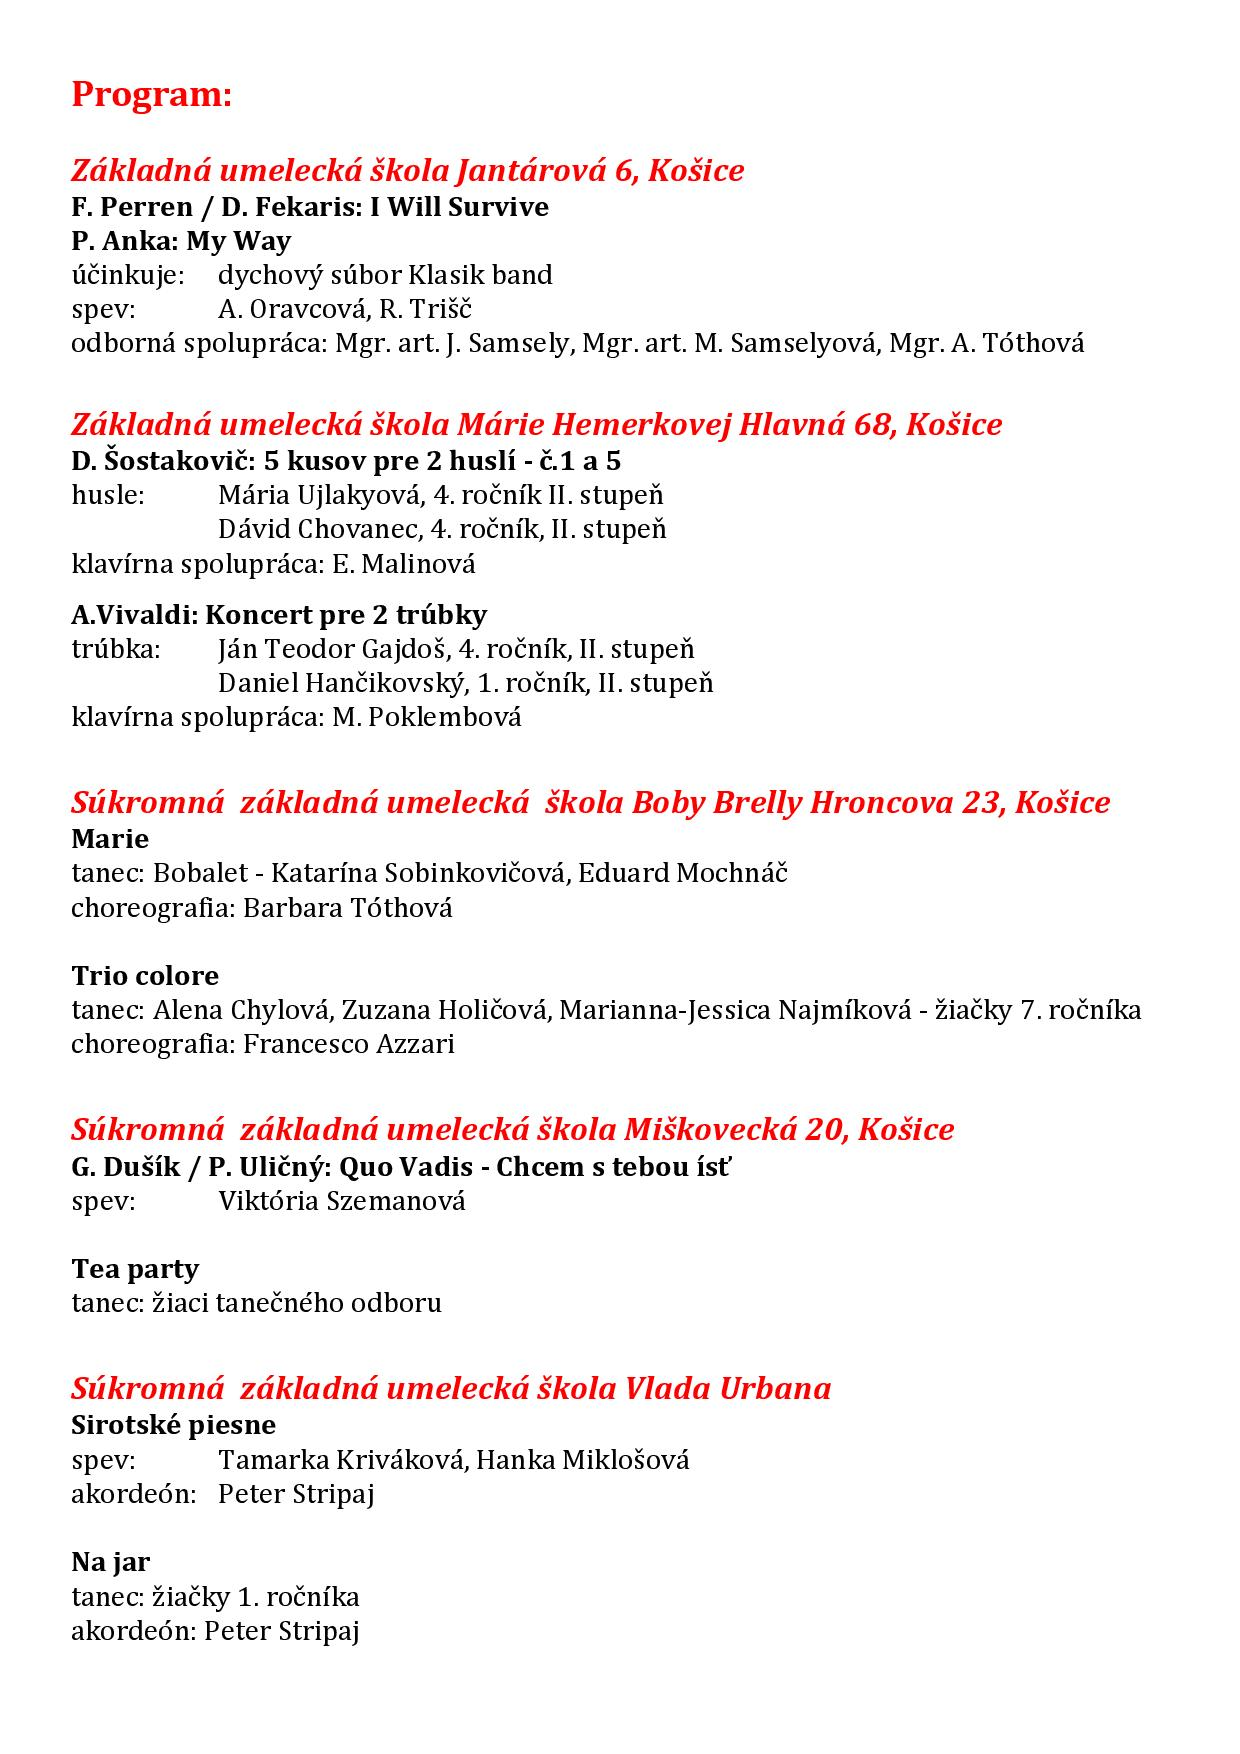 galakoncert_program_2015_page_002